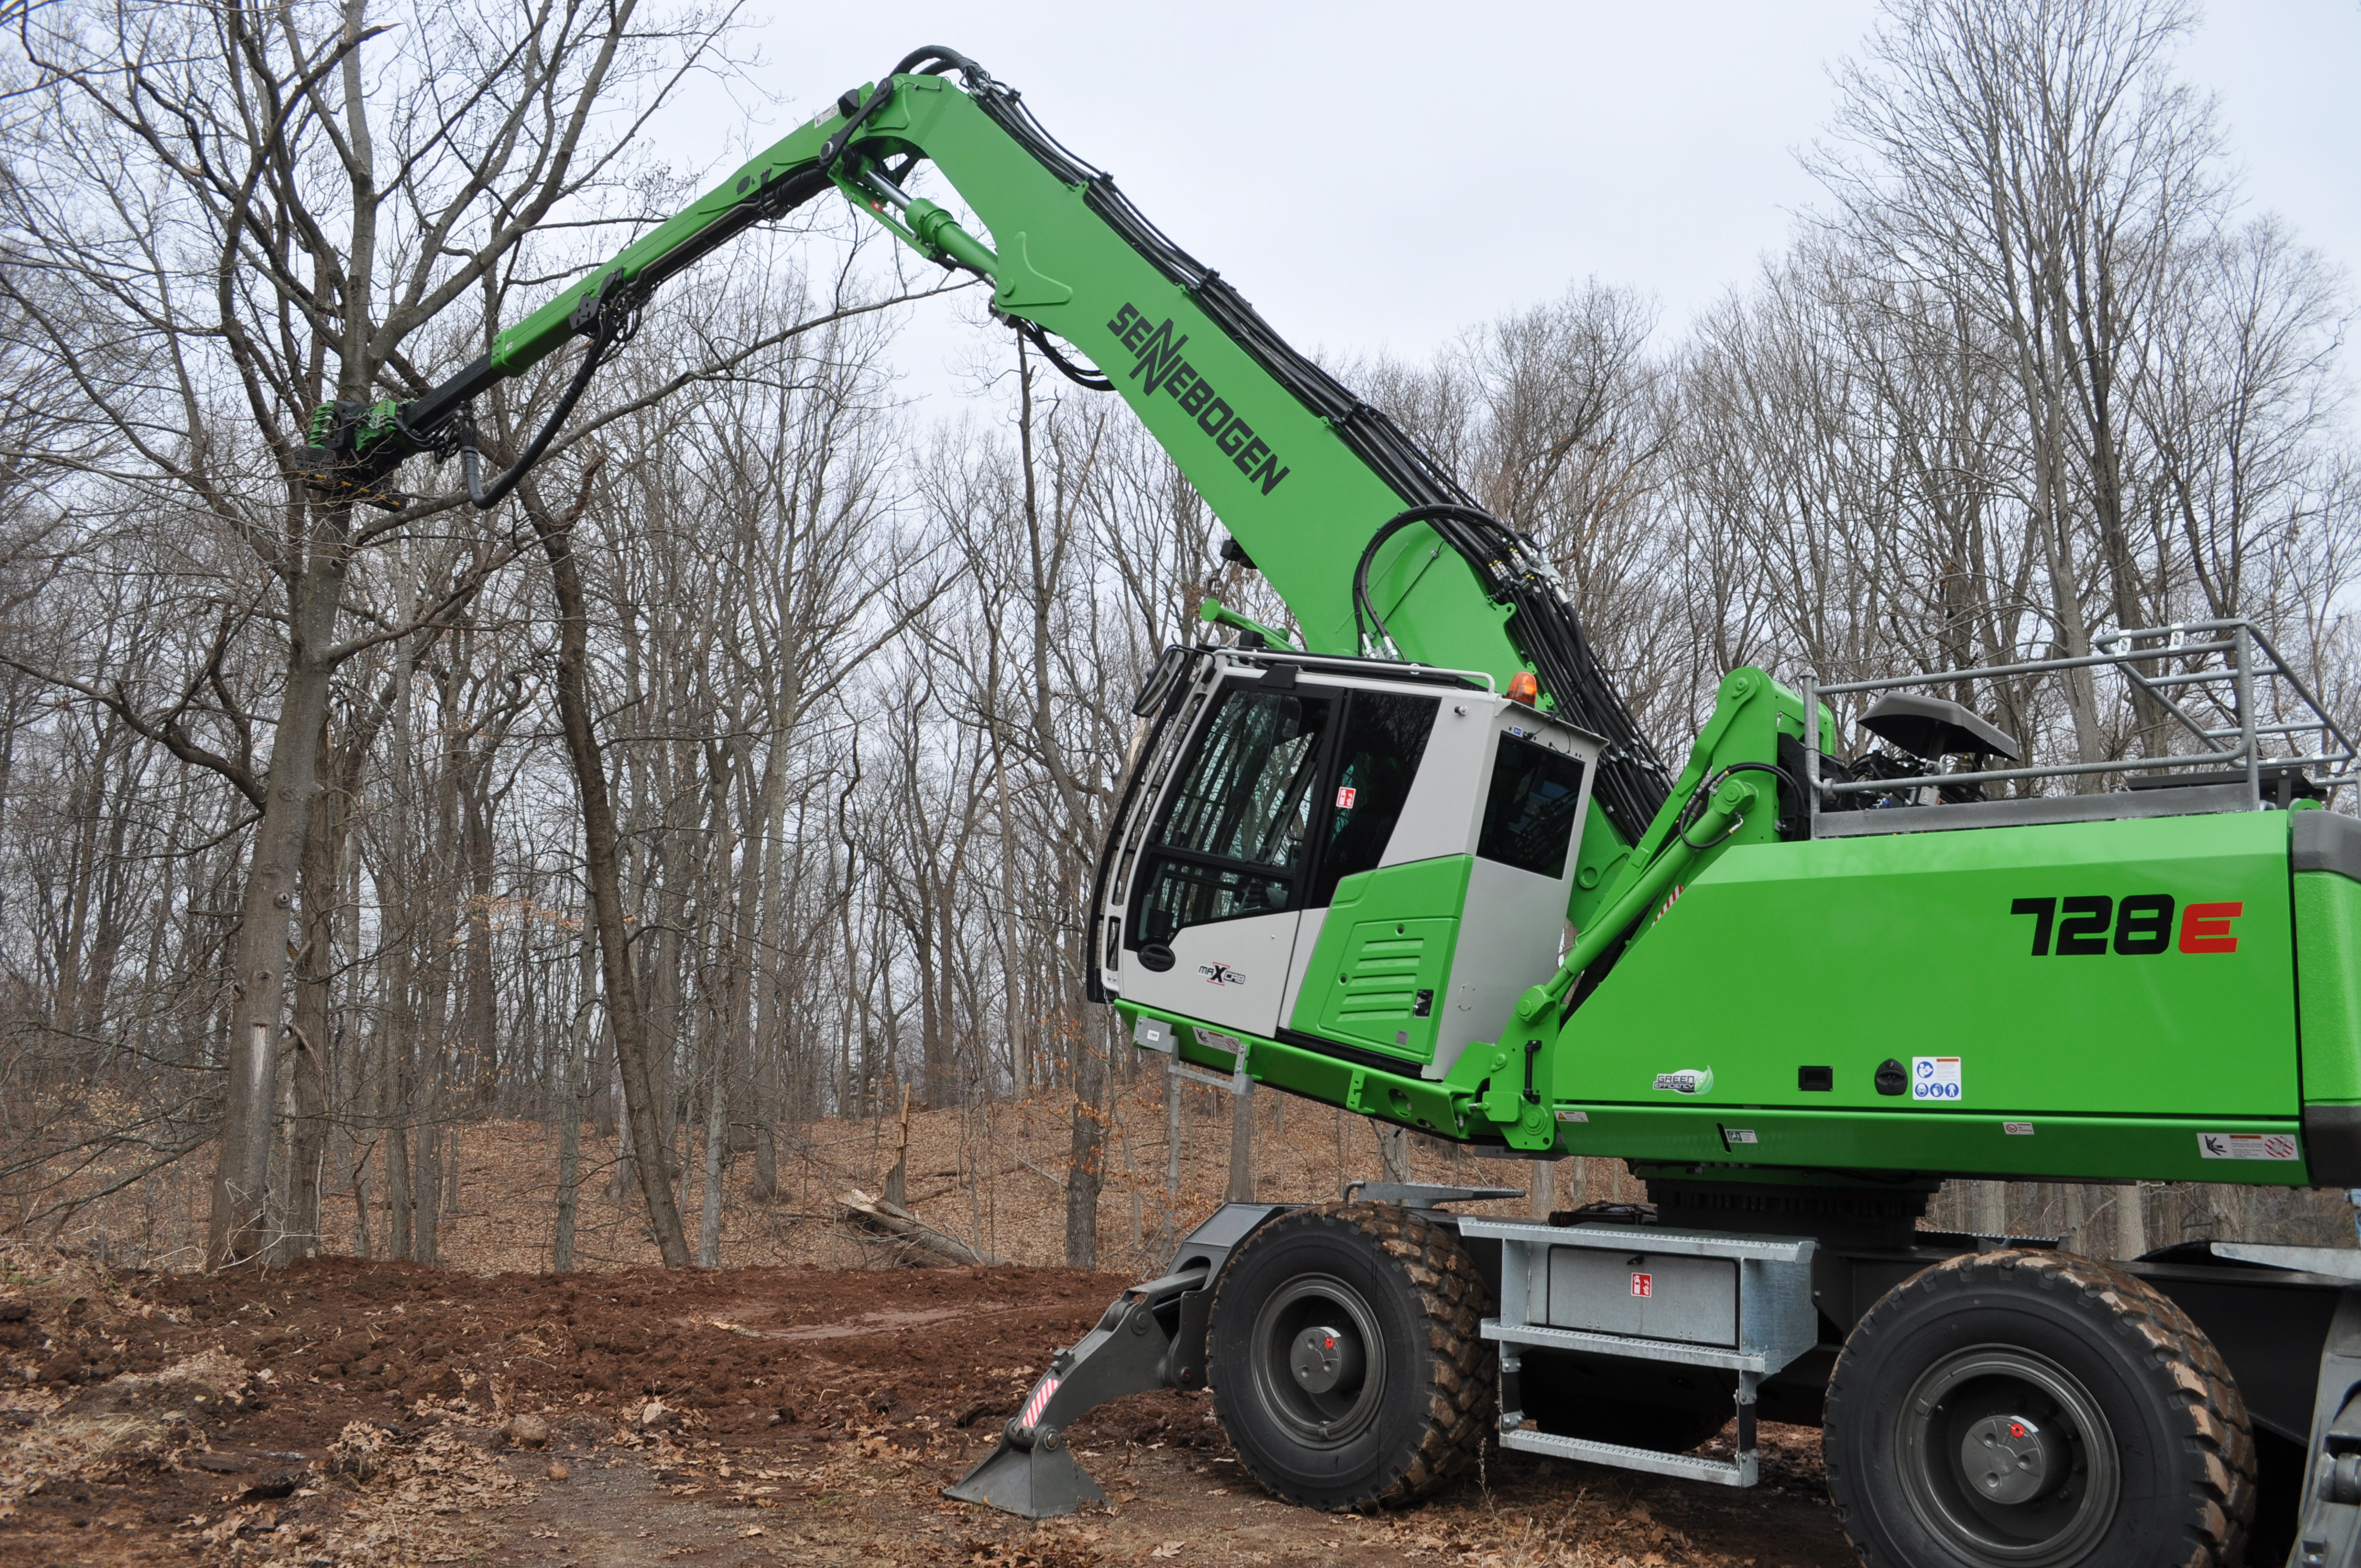 SENNEBOGEN 728 cutting tree